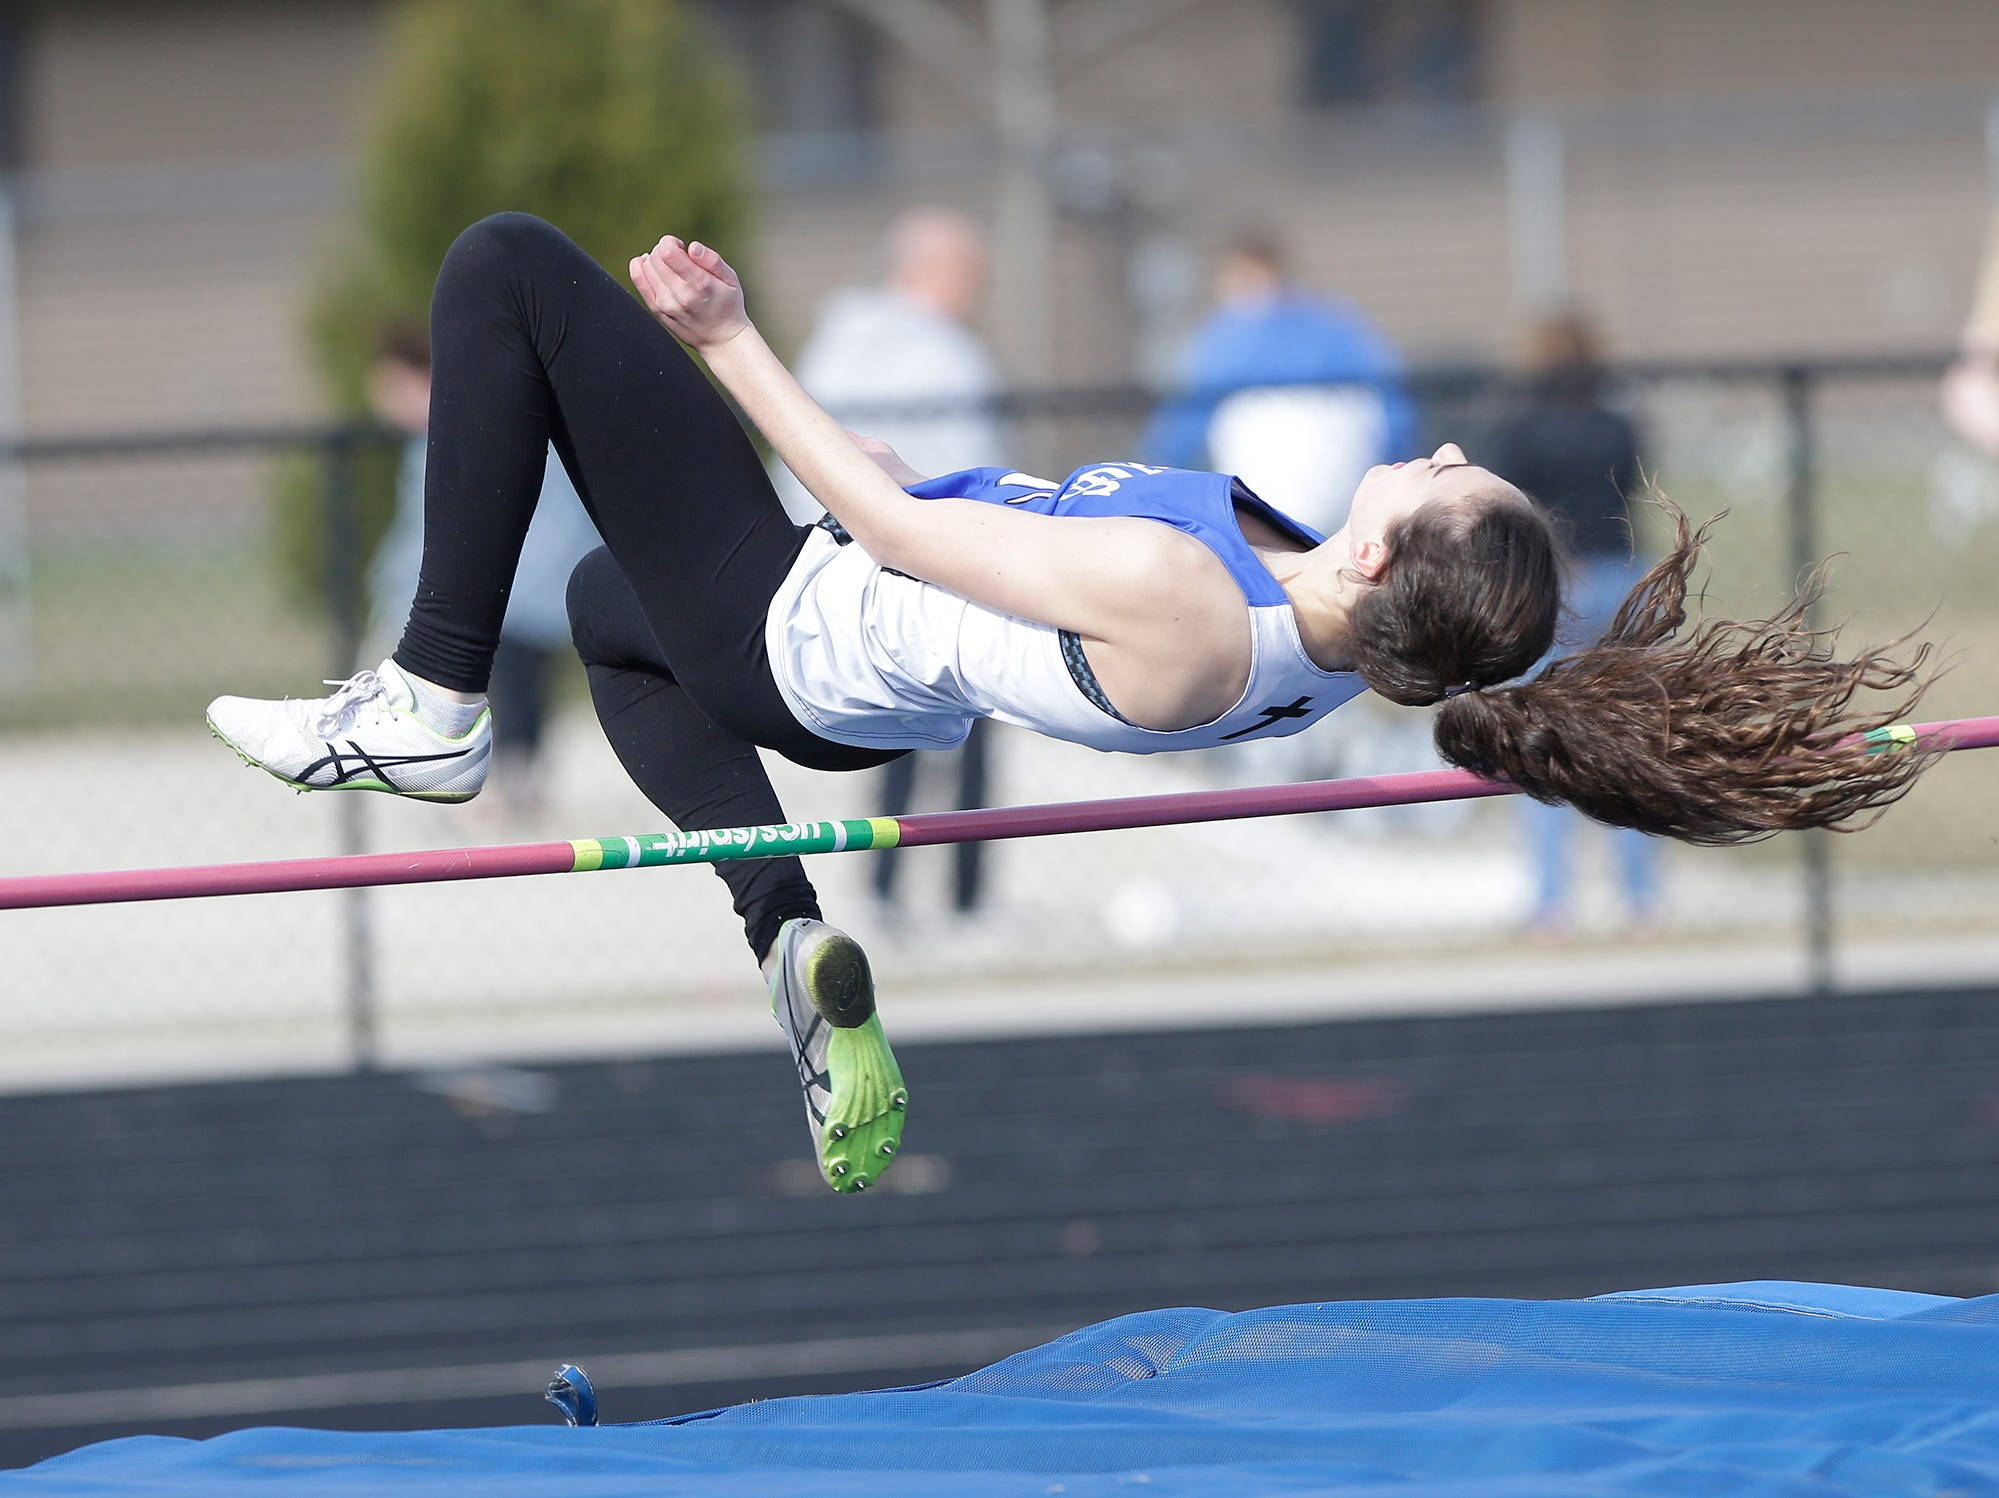 St Mary's Springs Academy's Isabella Coon takes part in the high jump Tuesday, April 16, 2019 at North Fond du Lac High School in North Fond du Lac, Wis. Doug Raflik/USA TODAY NETWORK-Wisconsin